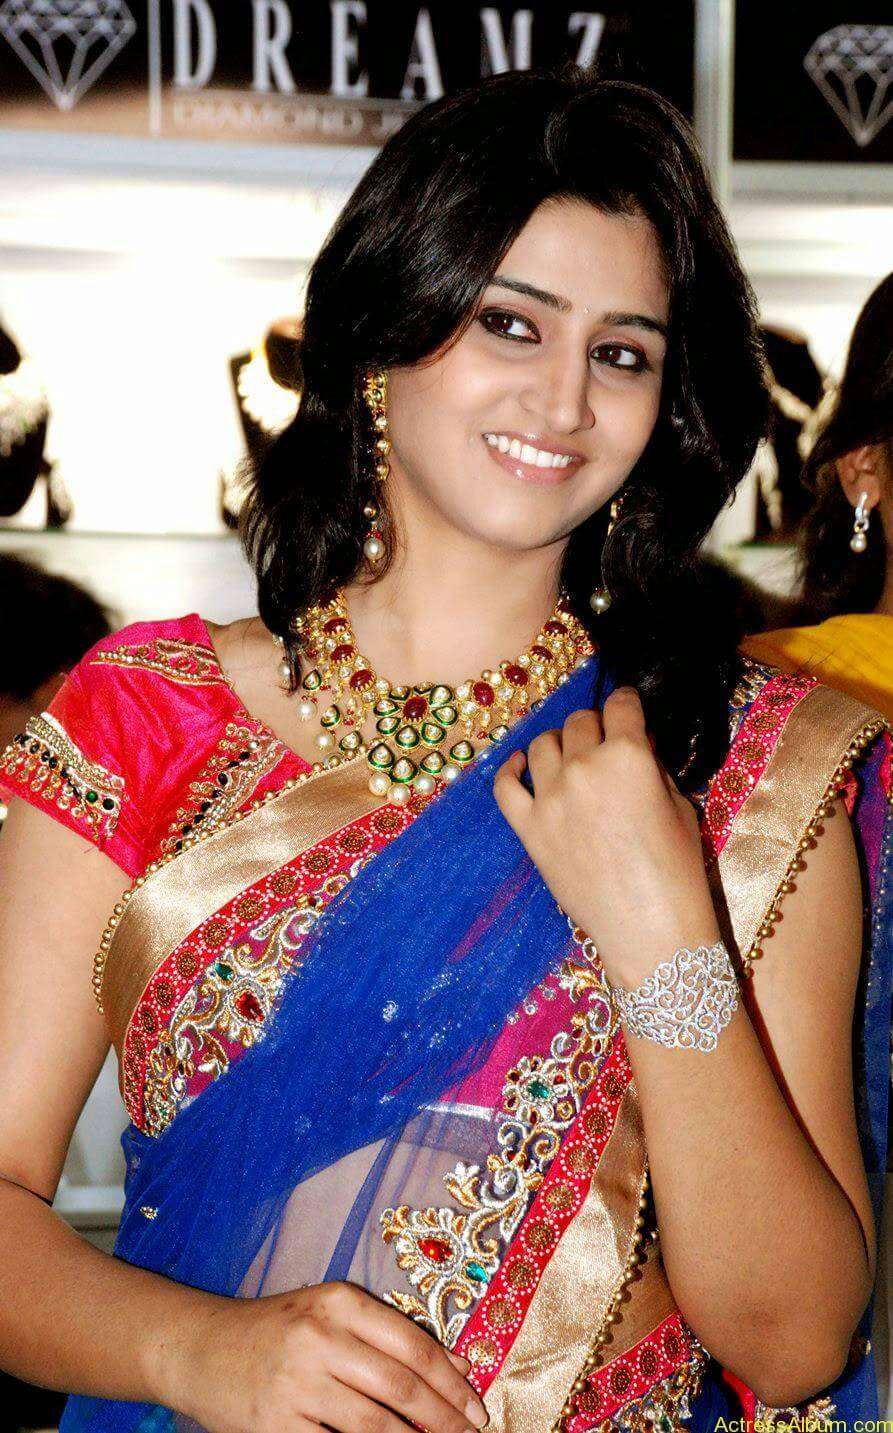 Shamli in saree at jewelry shop opening 4